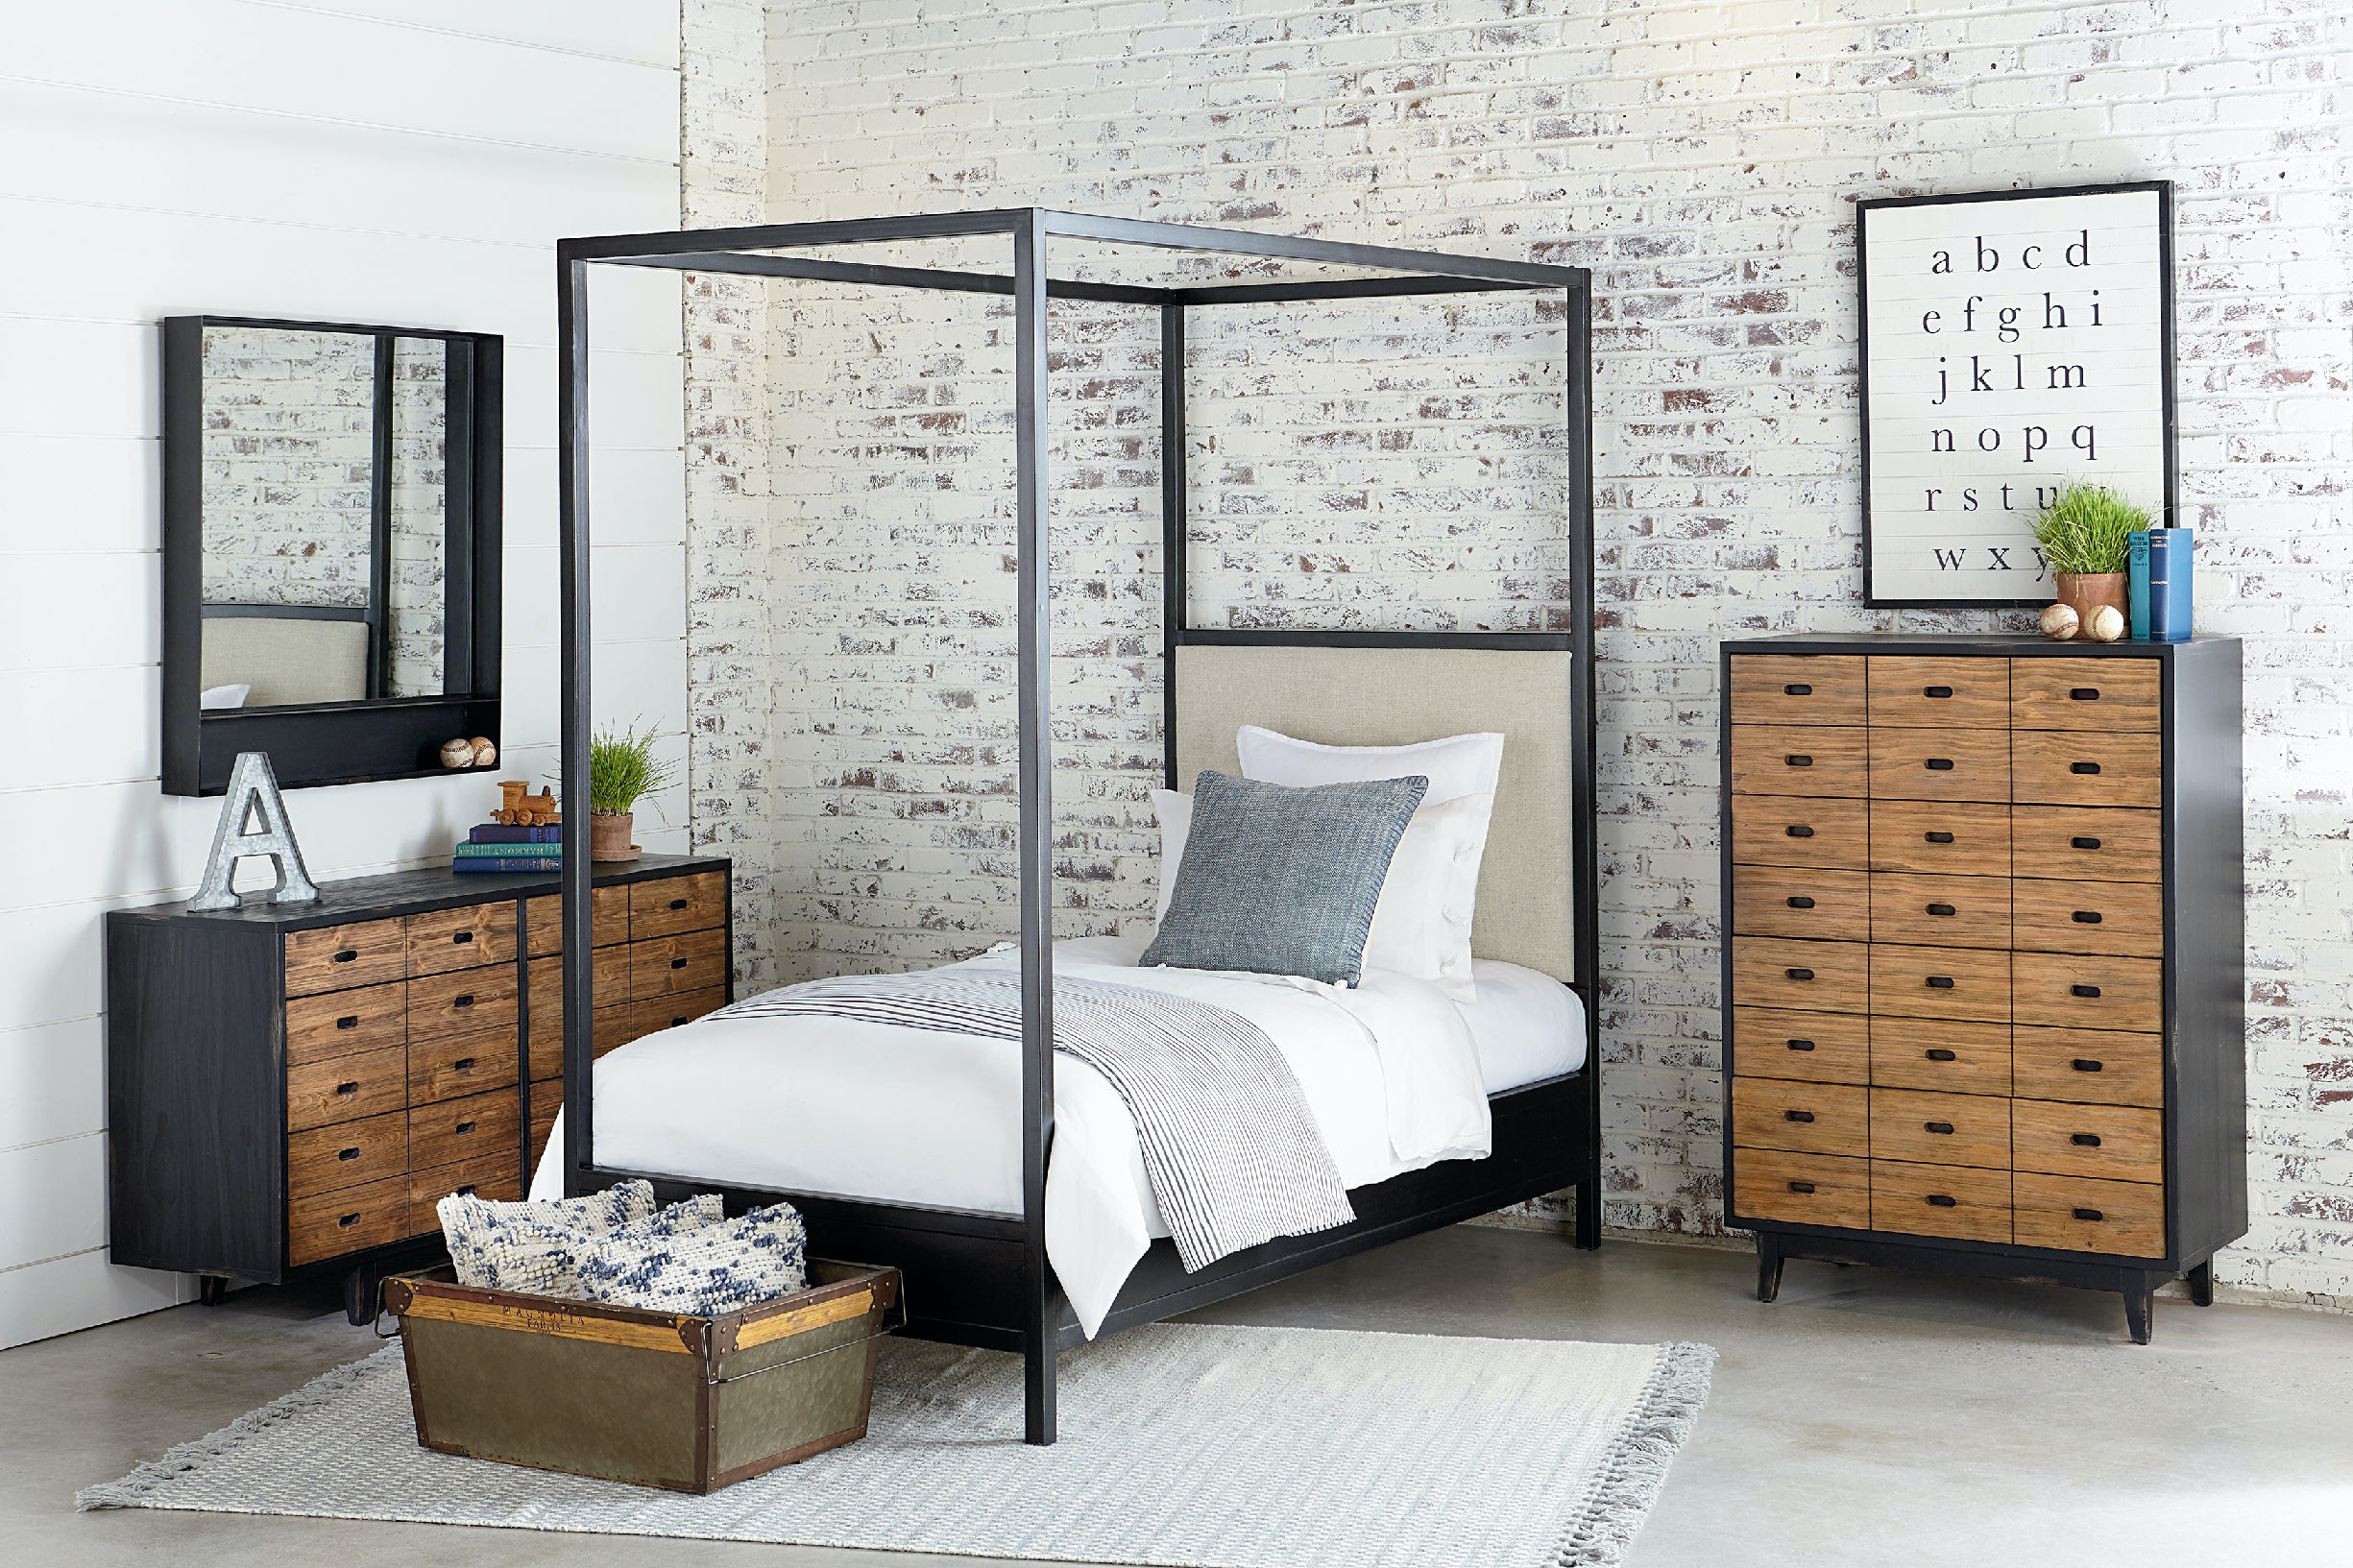 Magnolia Kids - Industrial Framework Upholstered Panel Canopy Bed - TWIN KT66399 : canopy beds twin - memphite.com